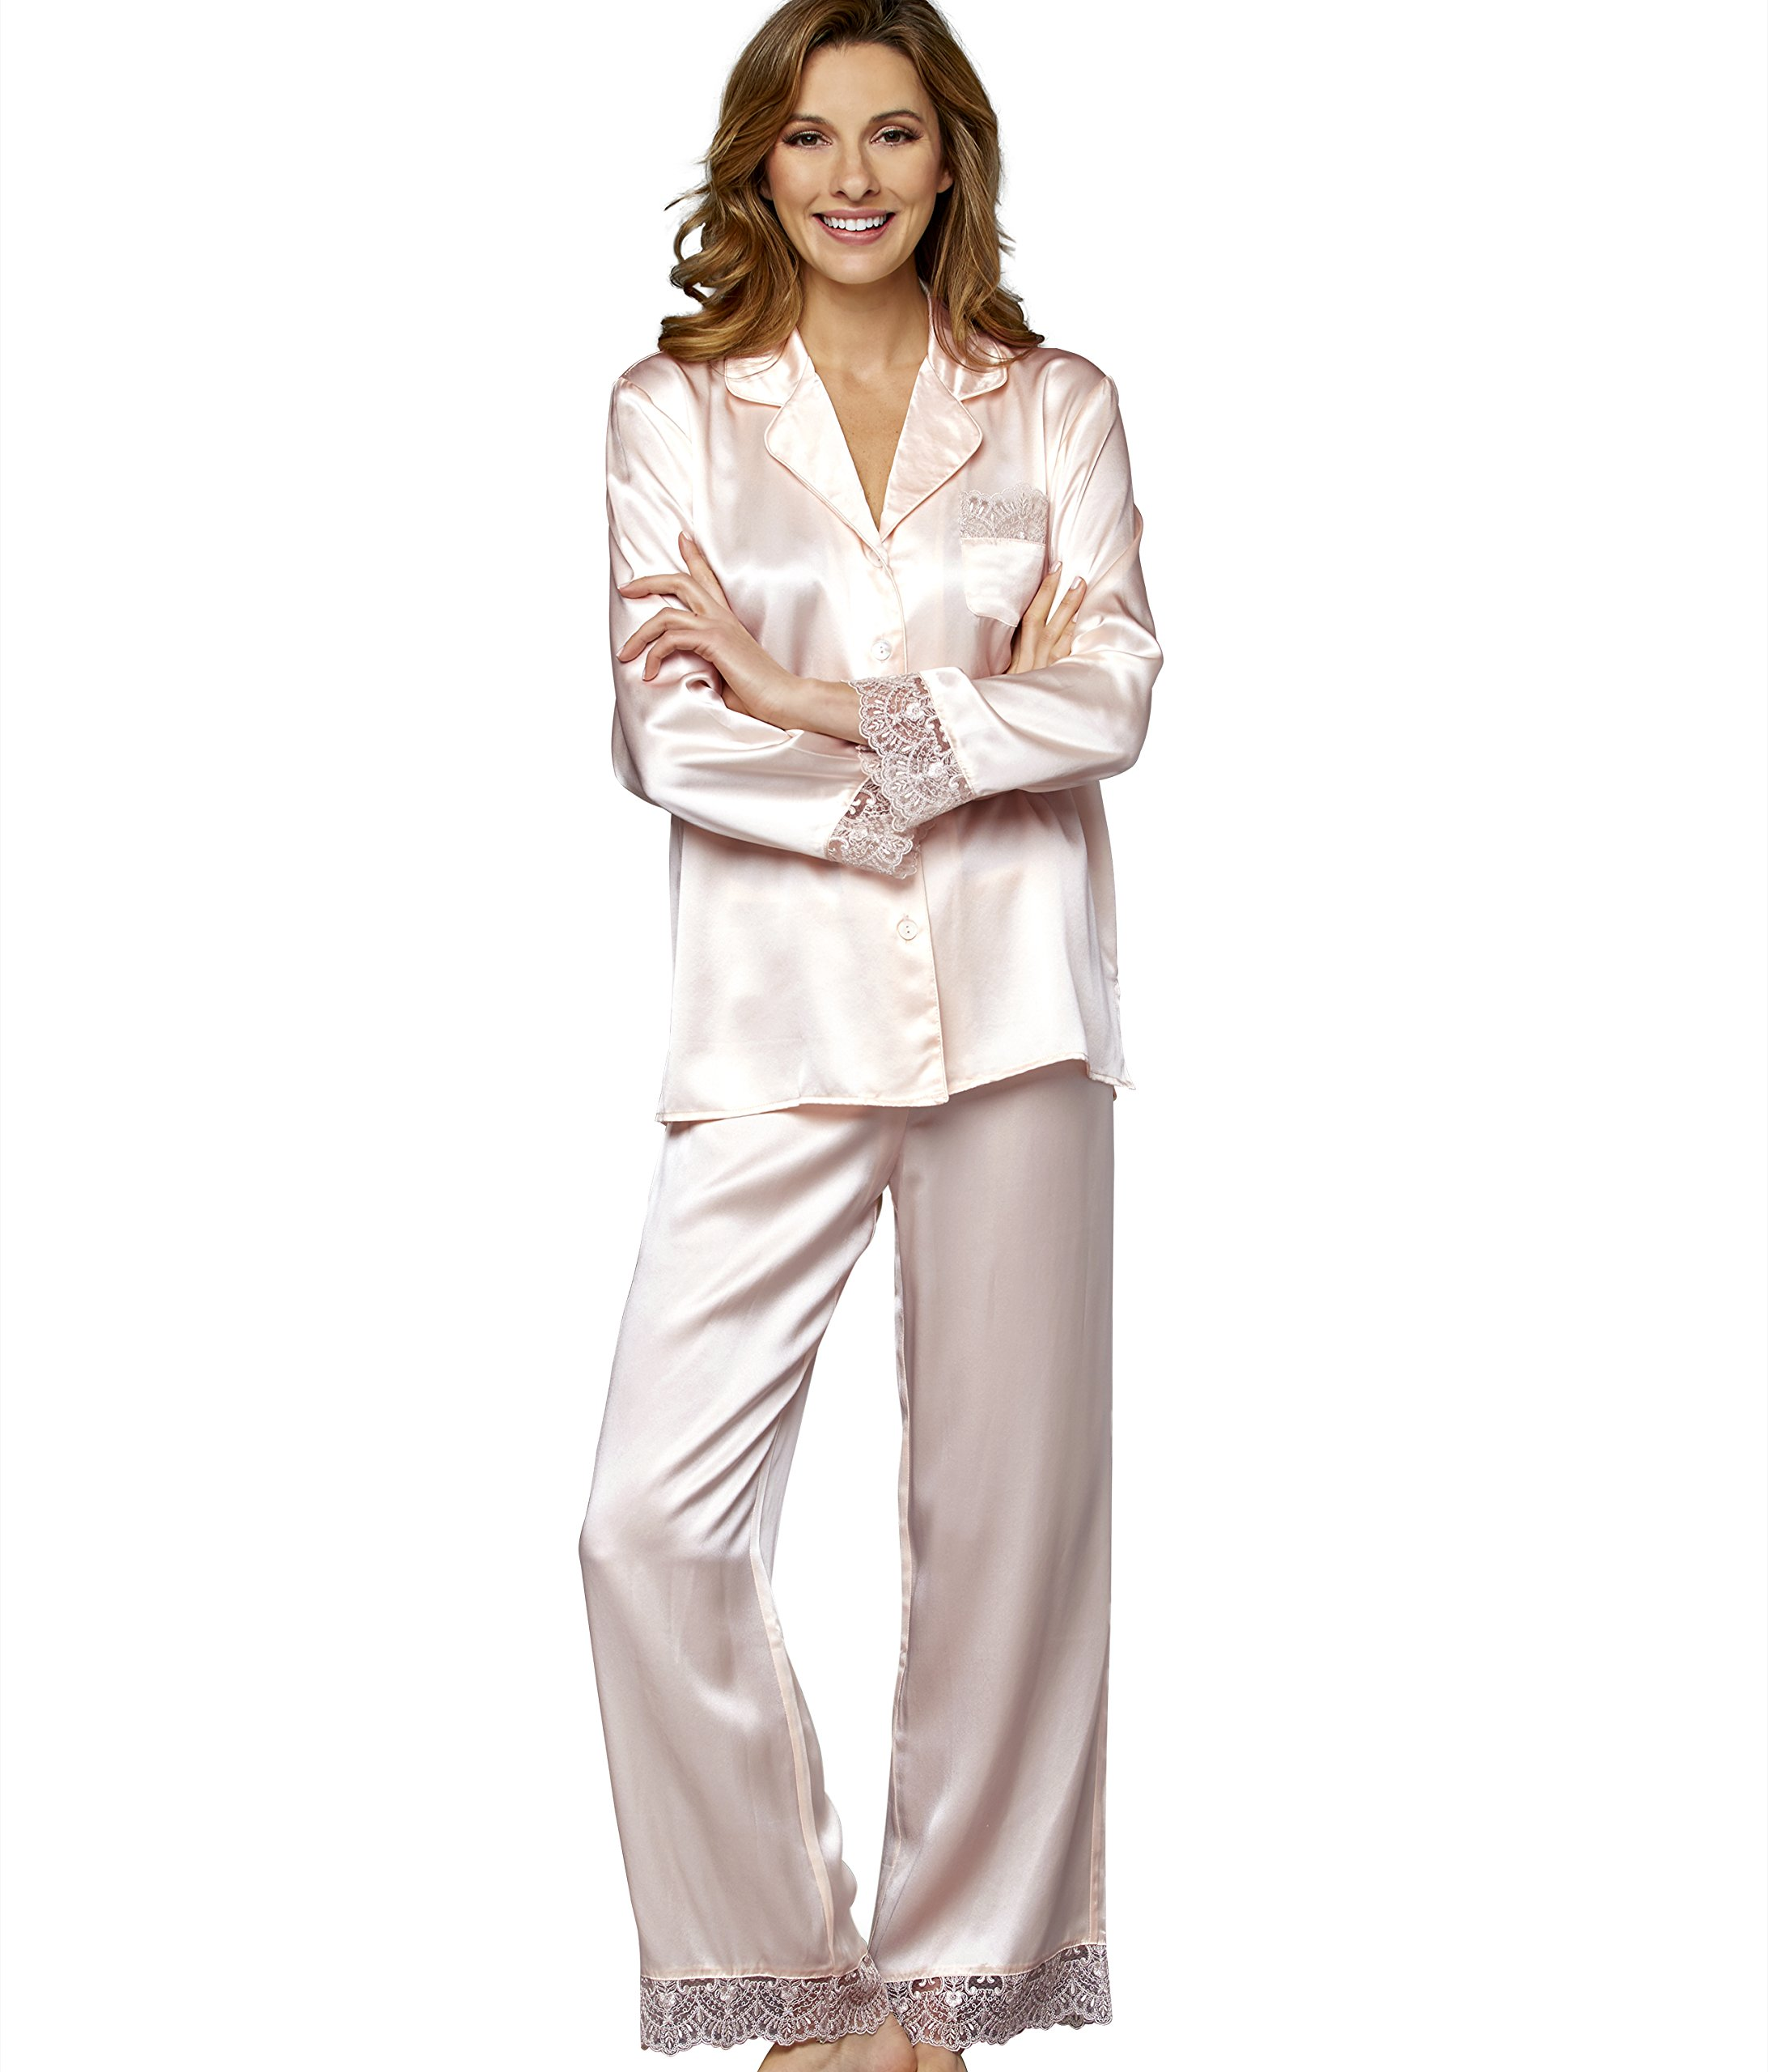 Julianna Rae Sleep-in Women's 100% Silk Pajama, Petite, Ballet, MP